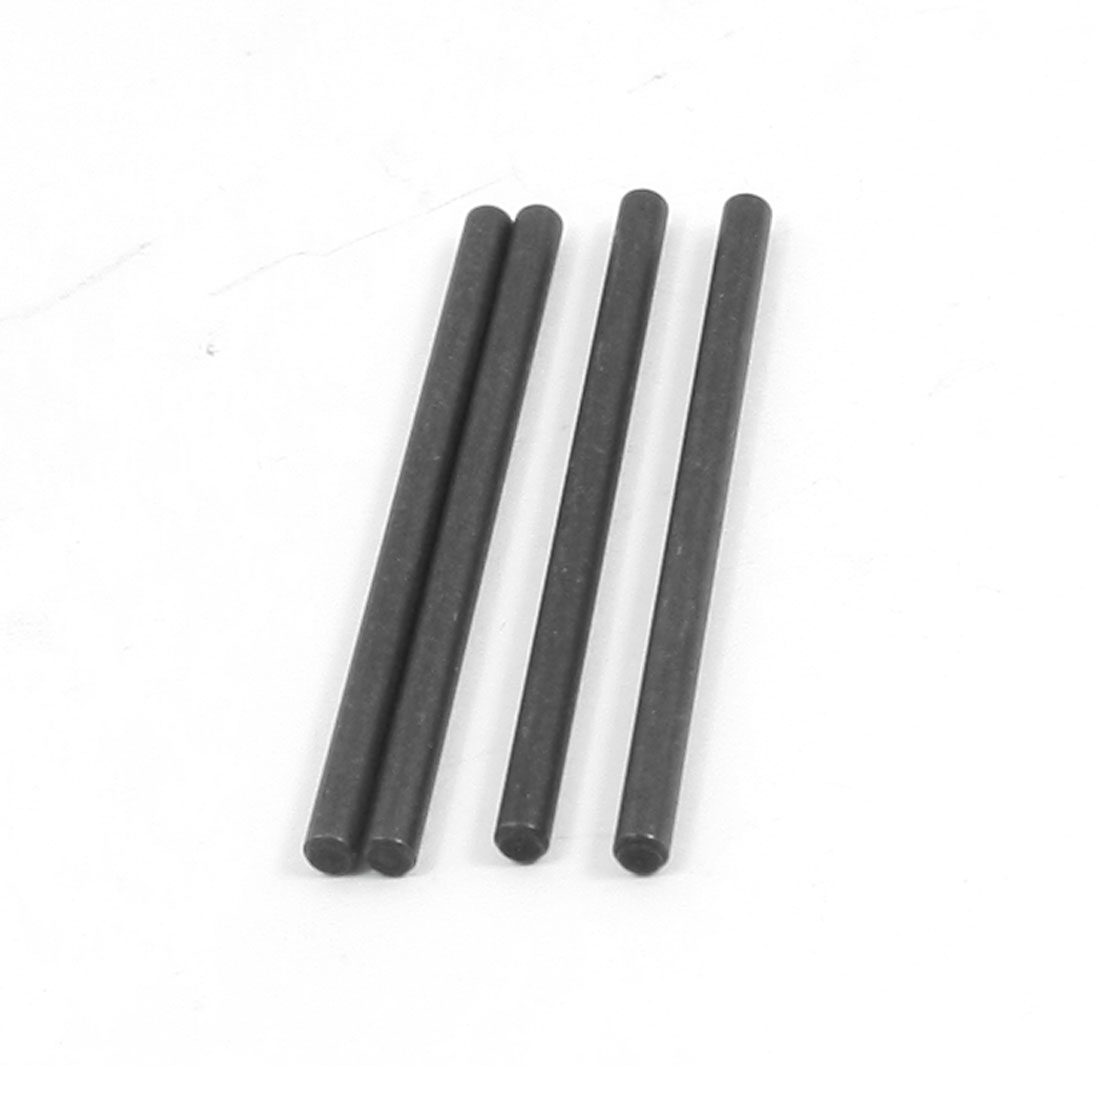 4pcs 86028 Front Rear Lower Arm Round Pin Spare Parts for HSP 1:16 RC Model Cars